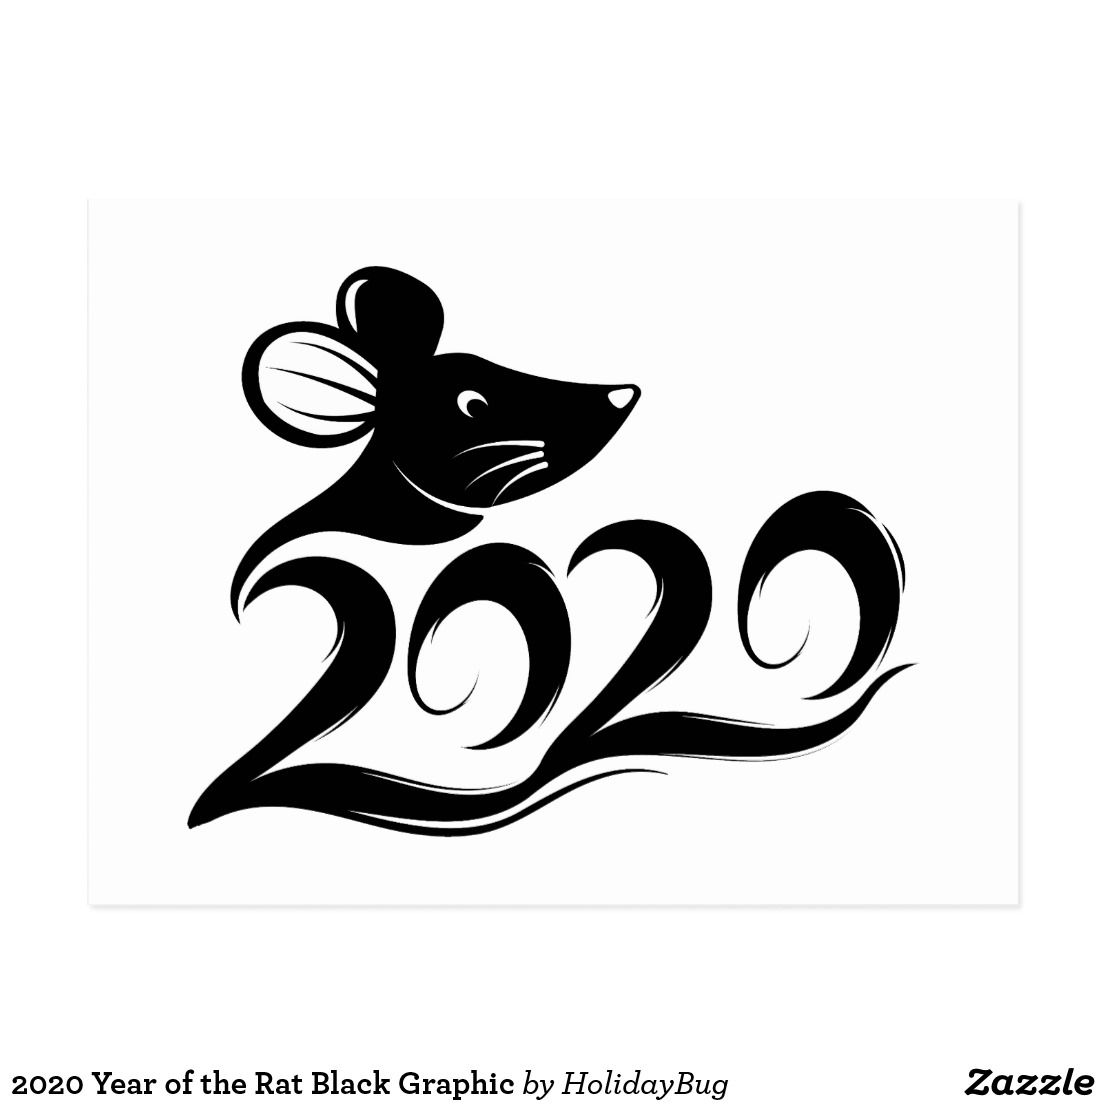 2020 Year of the Rat Black Graphic Postcard Nghệ thuật